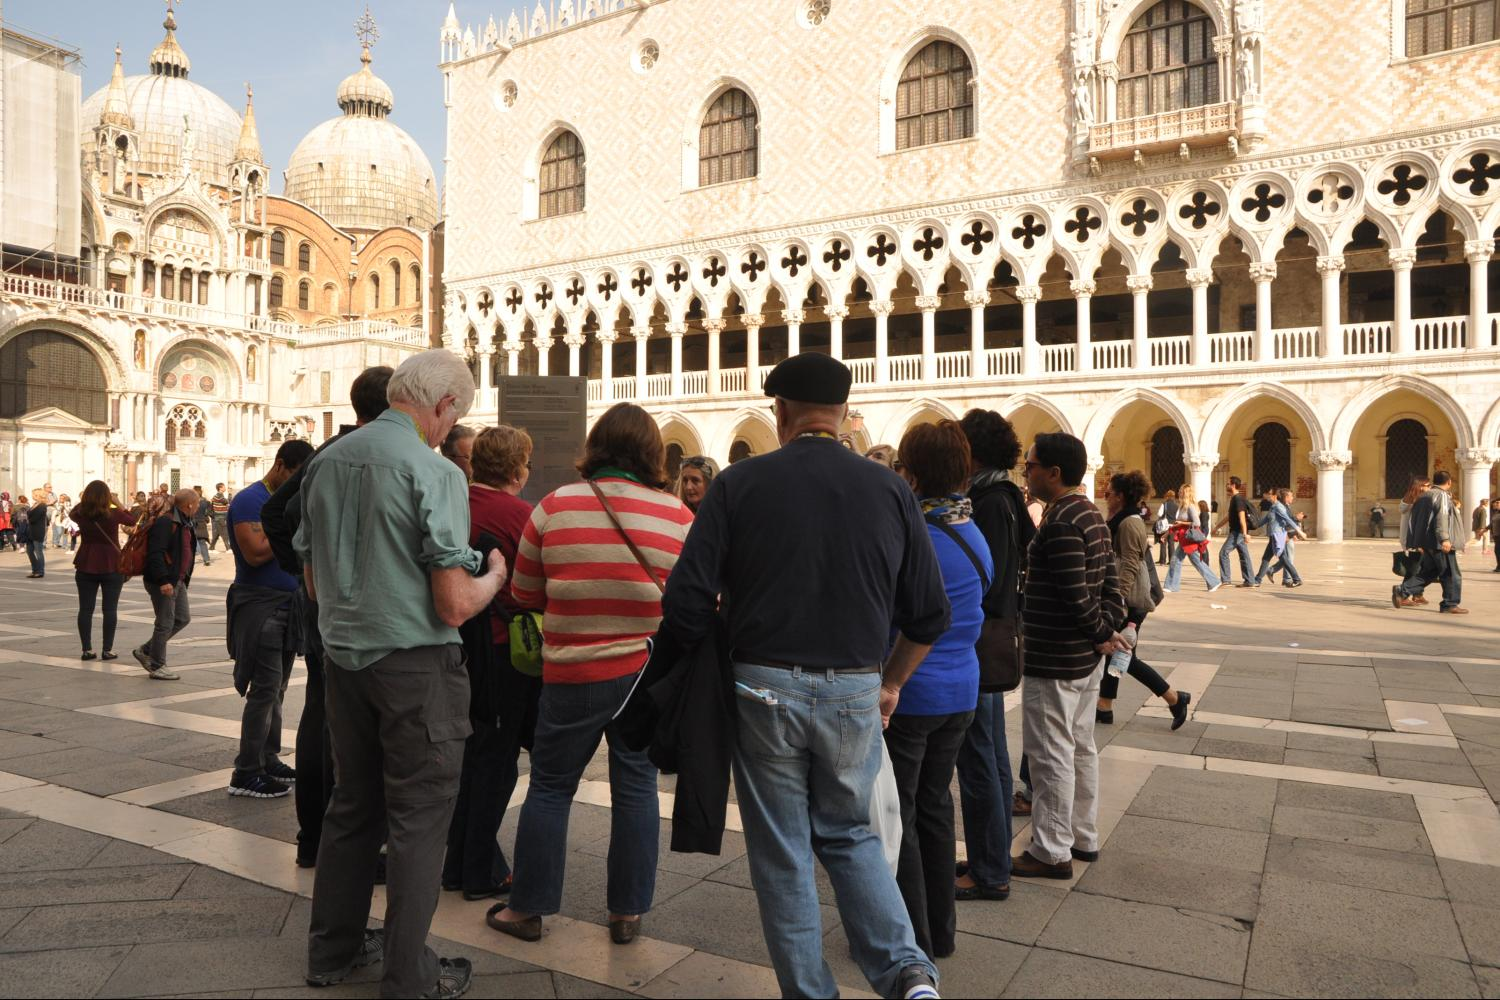 Best of Venice and St.Mark's Basilica walking tour - St. Mark's Basilica